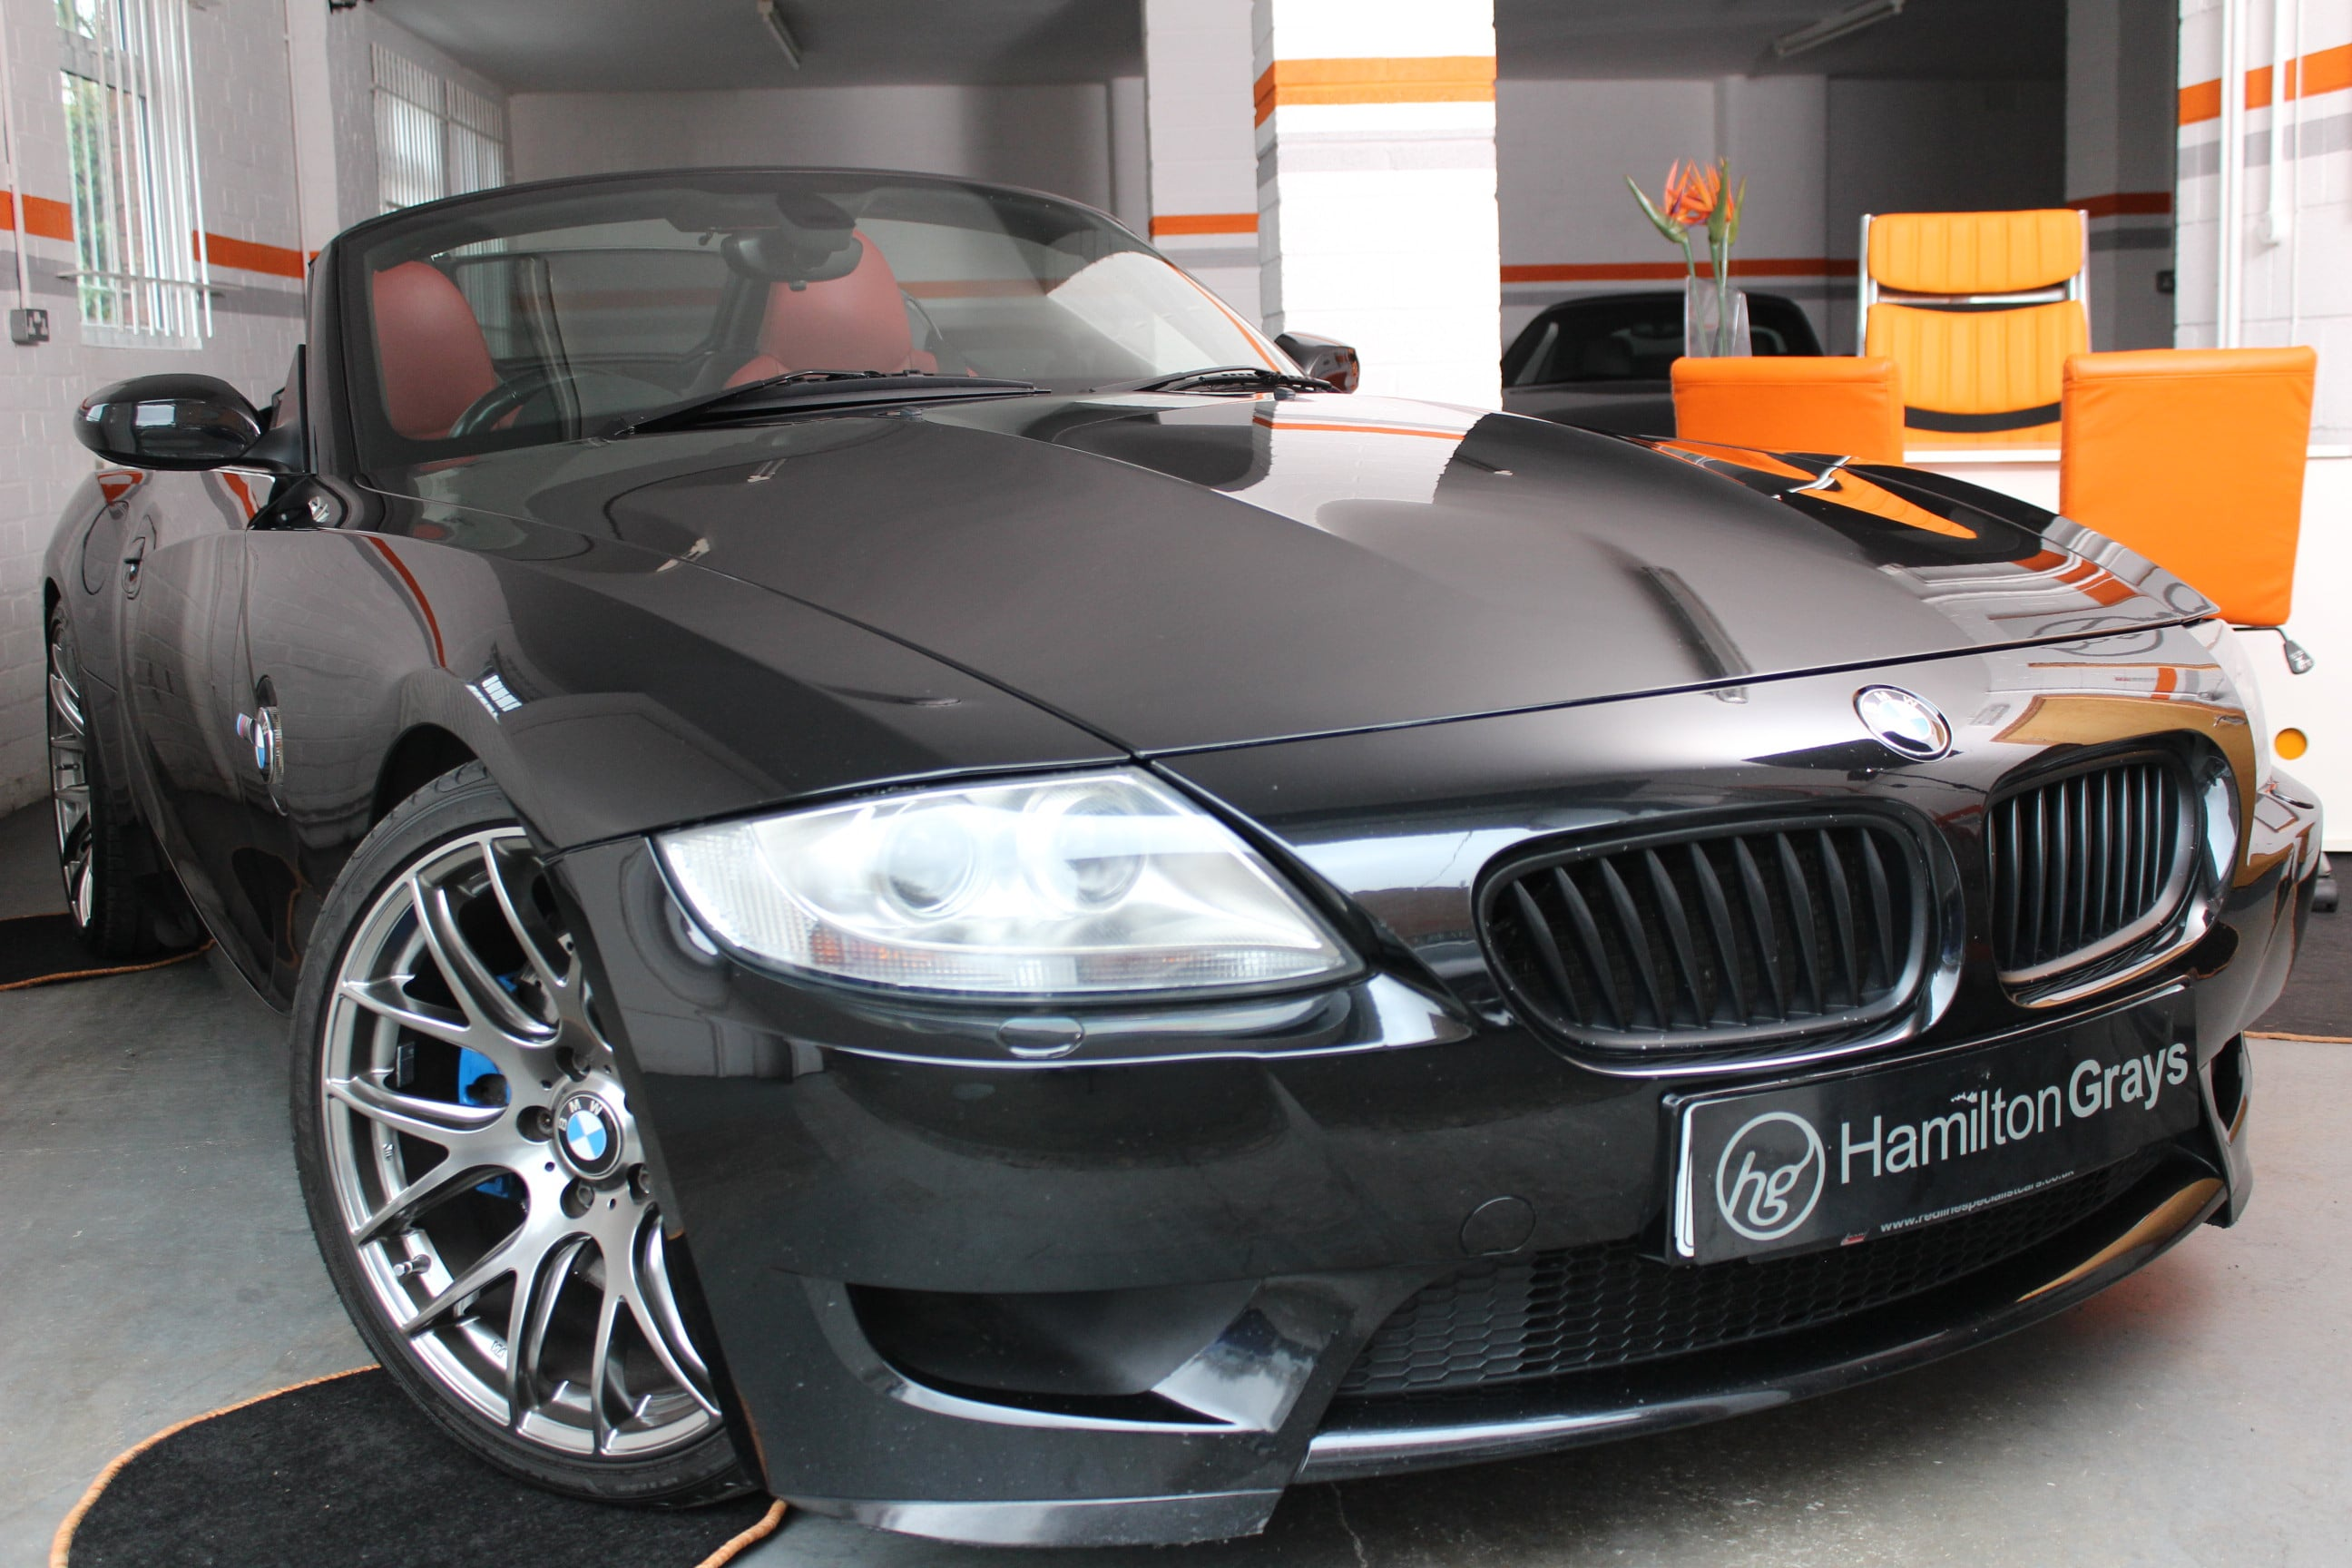 2007 07 bmw z4 m roadster 3 2 manual fbmwsh just serviced at bmw rh hamiltongrays com BMW Motorcycle Manuals BMW Z4 M Series